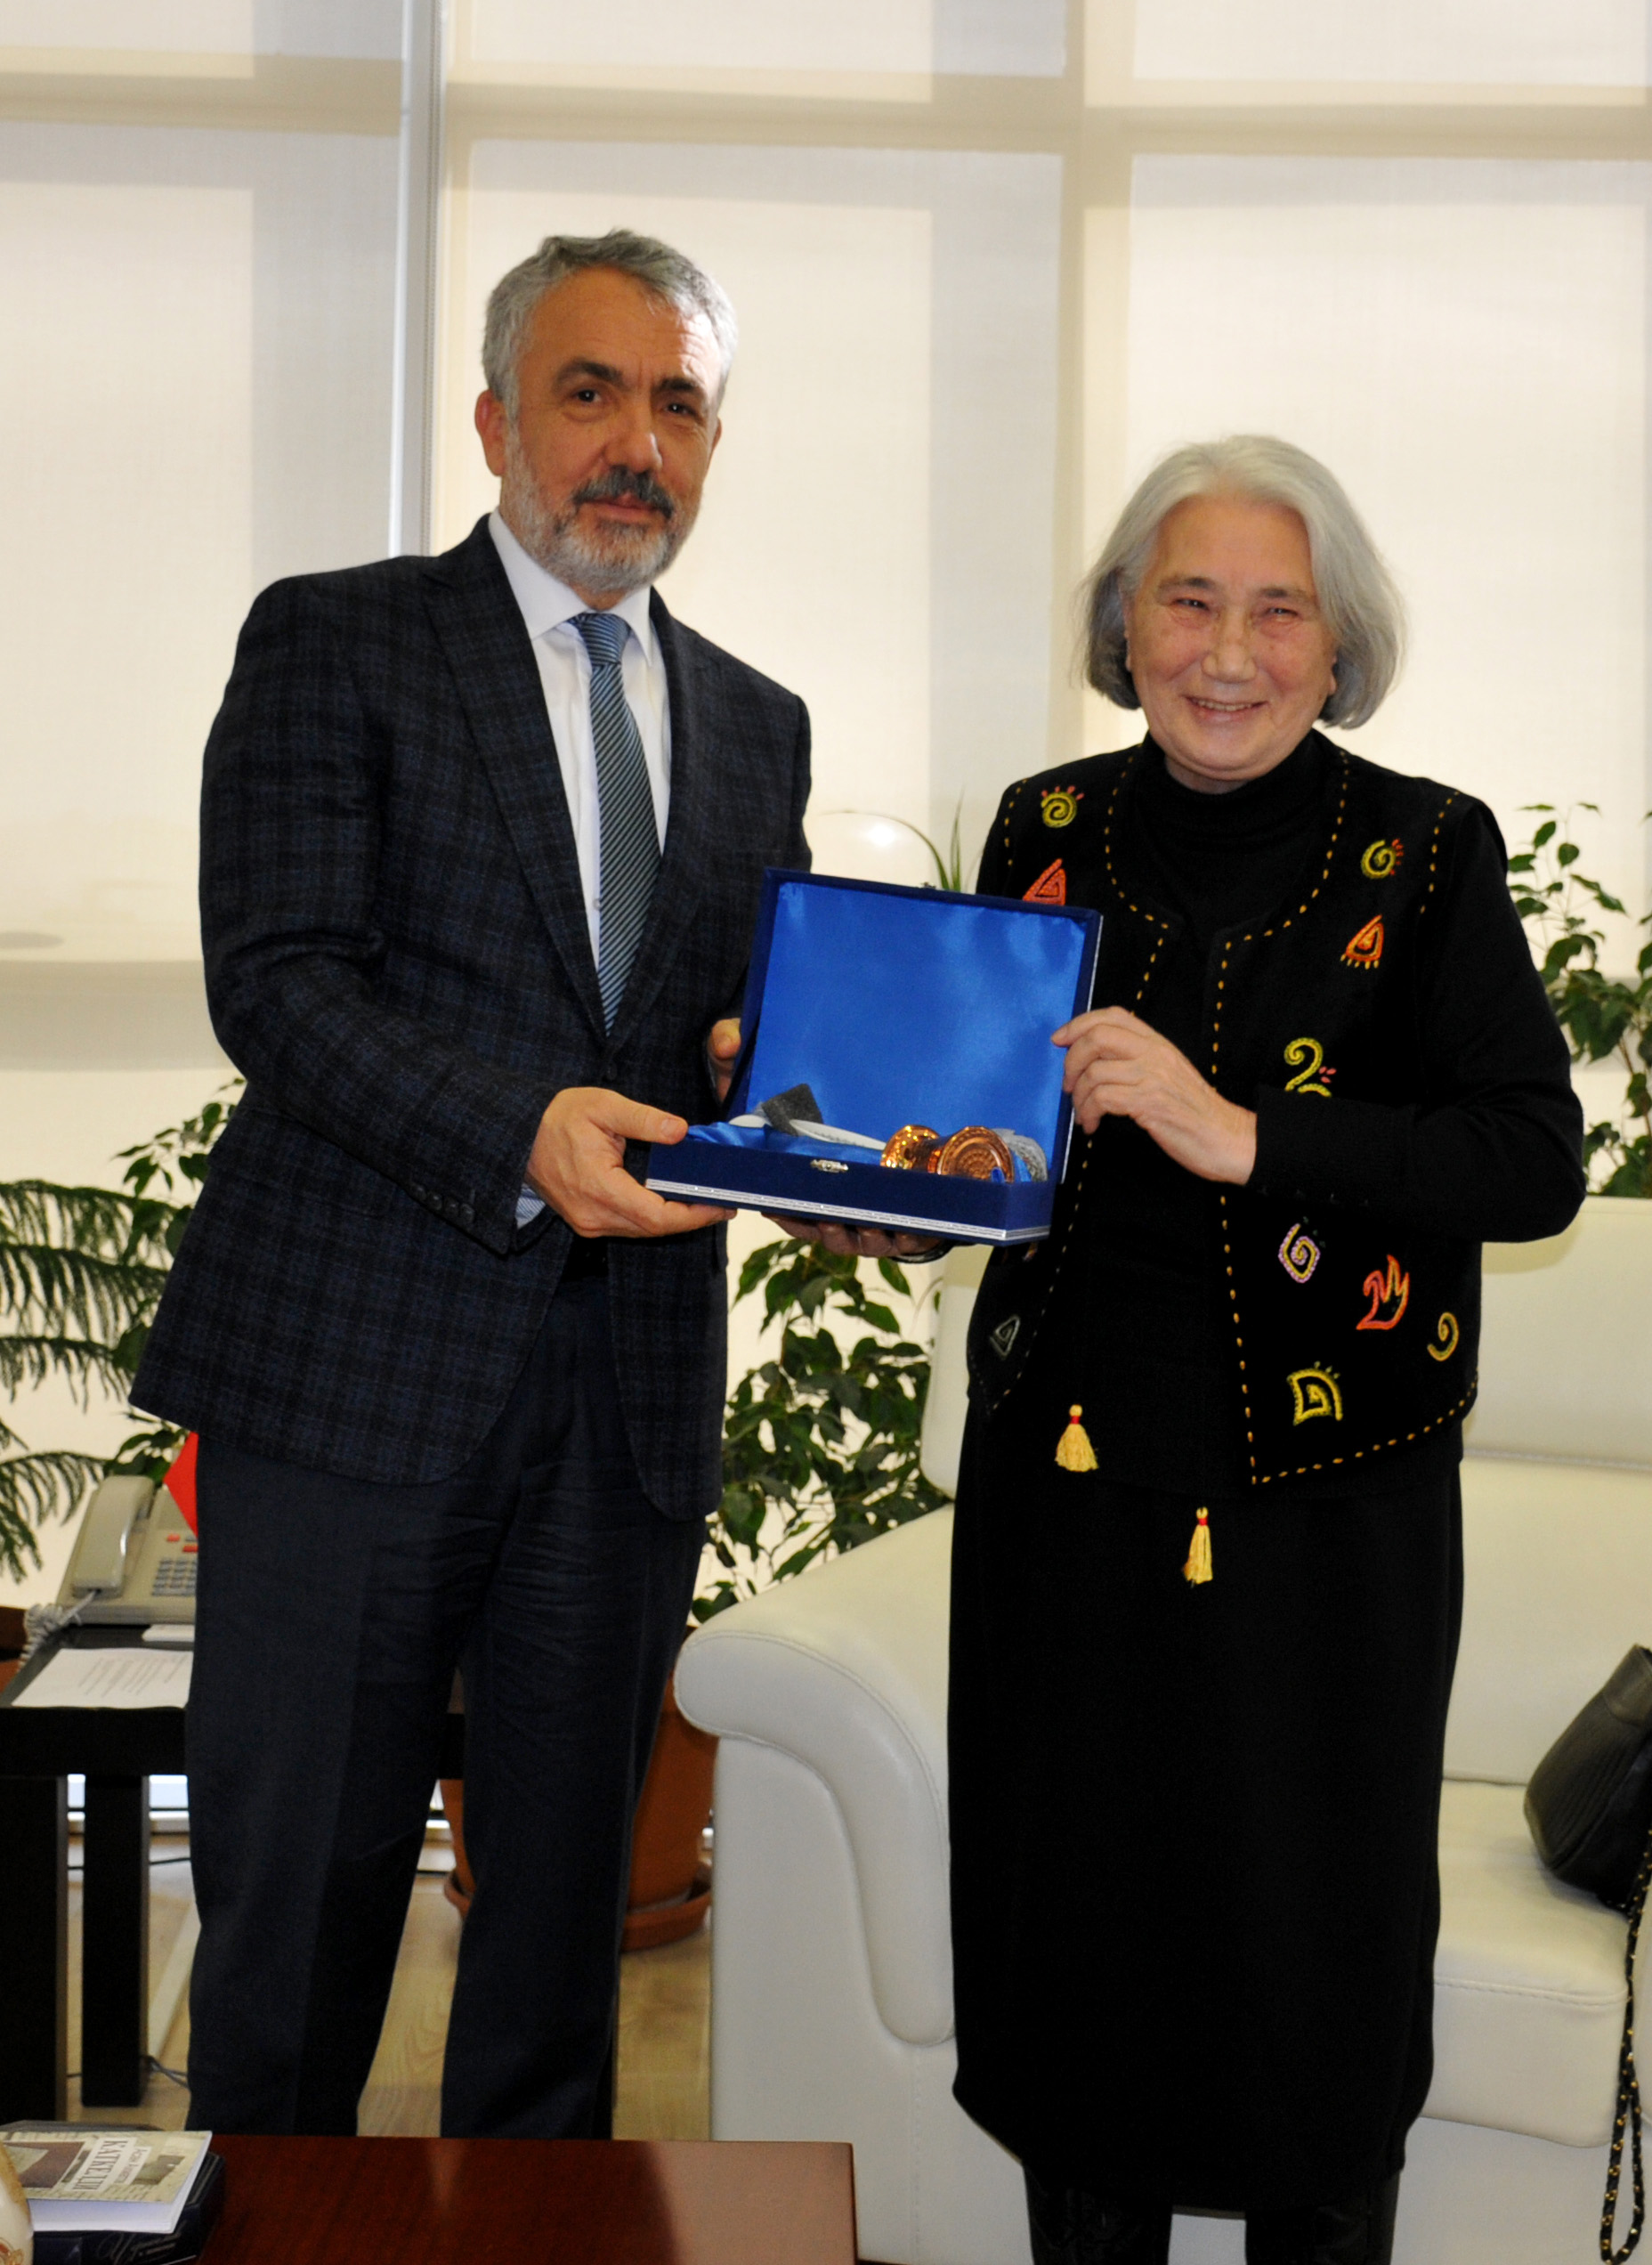 http://www.omu.edu.tr/sites/default/files/files/roza_aitmatov_visits_rector_bilgic/dsc_0166.jpg